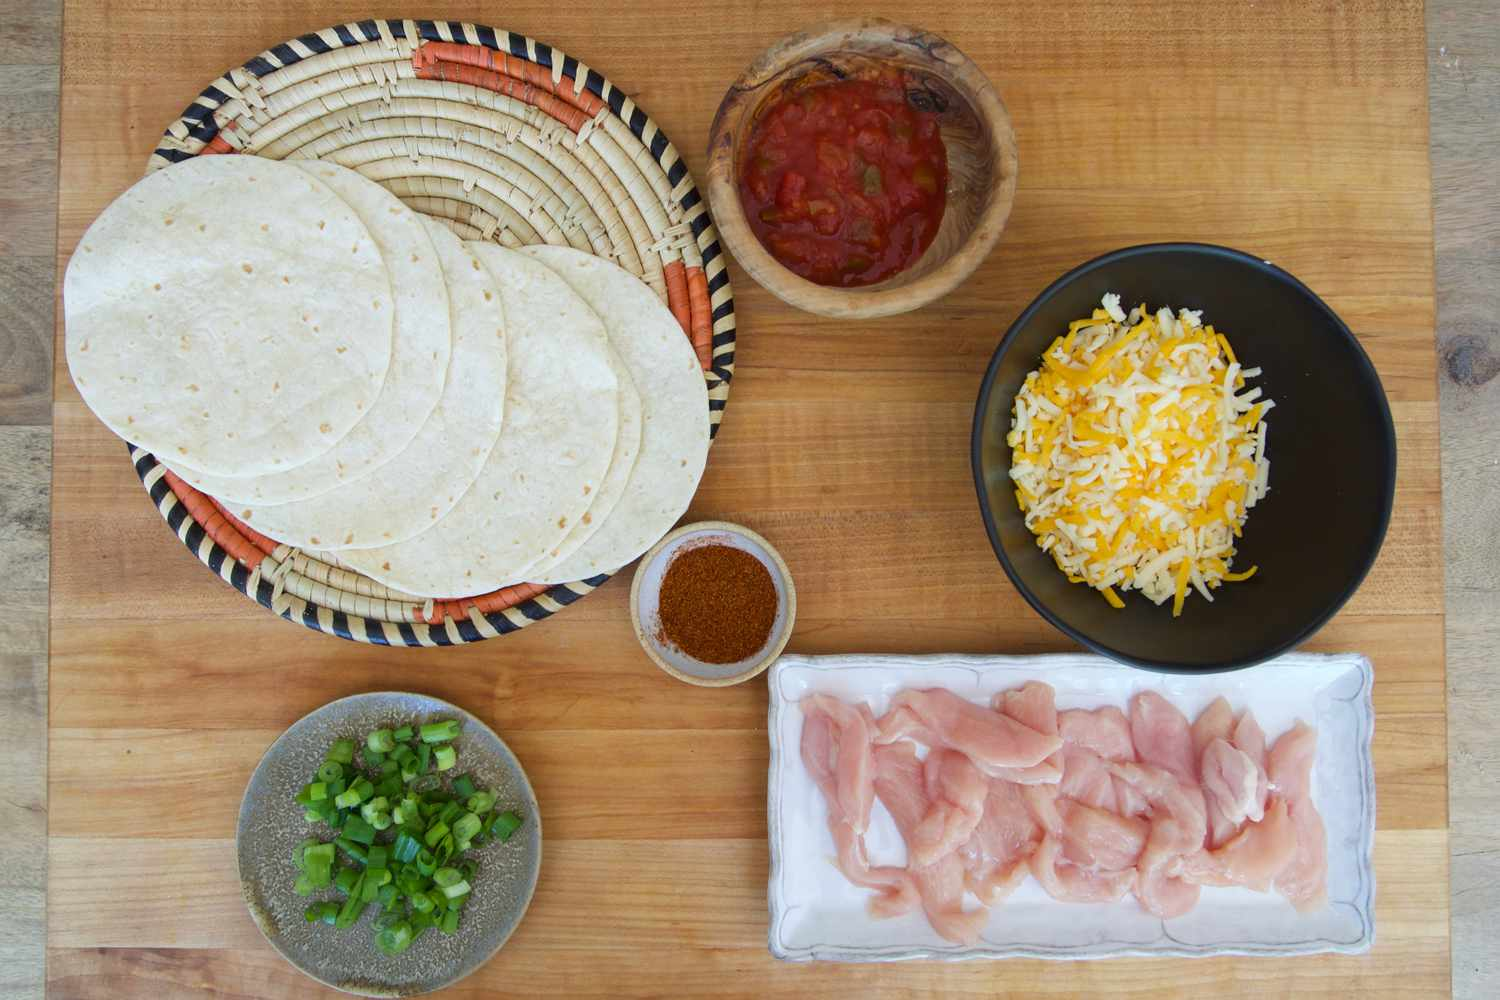 Dinnerly ingredients on a cutting board